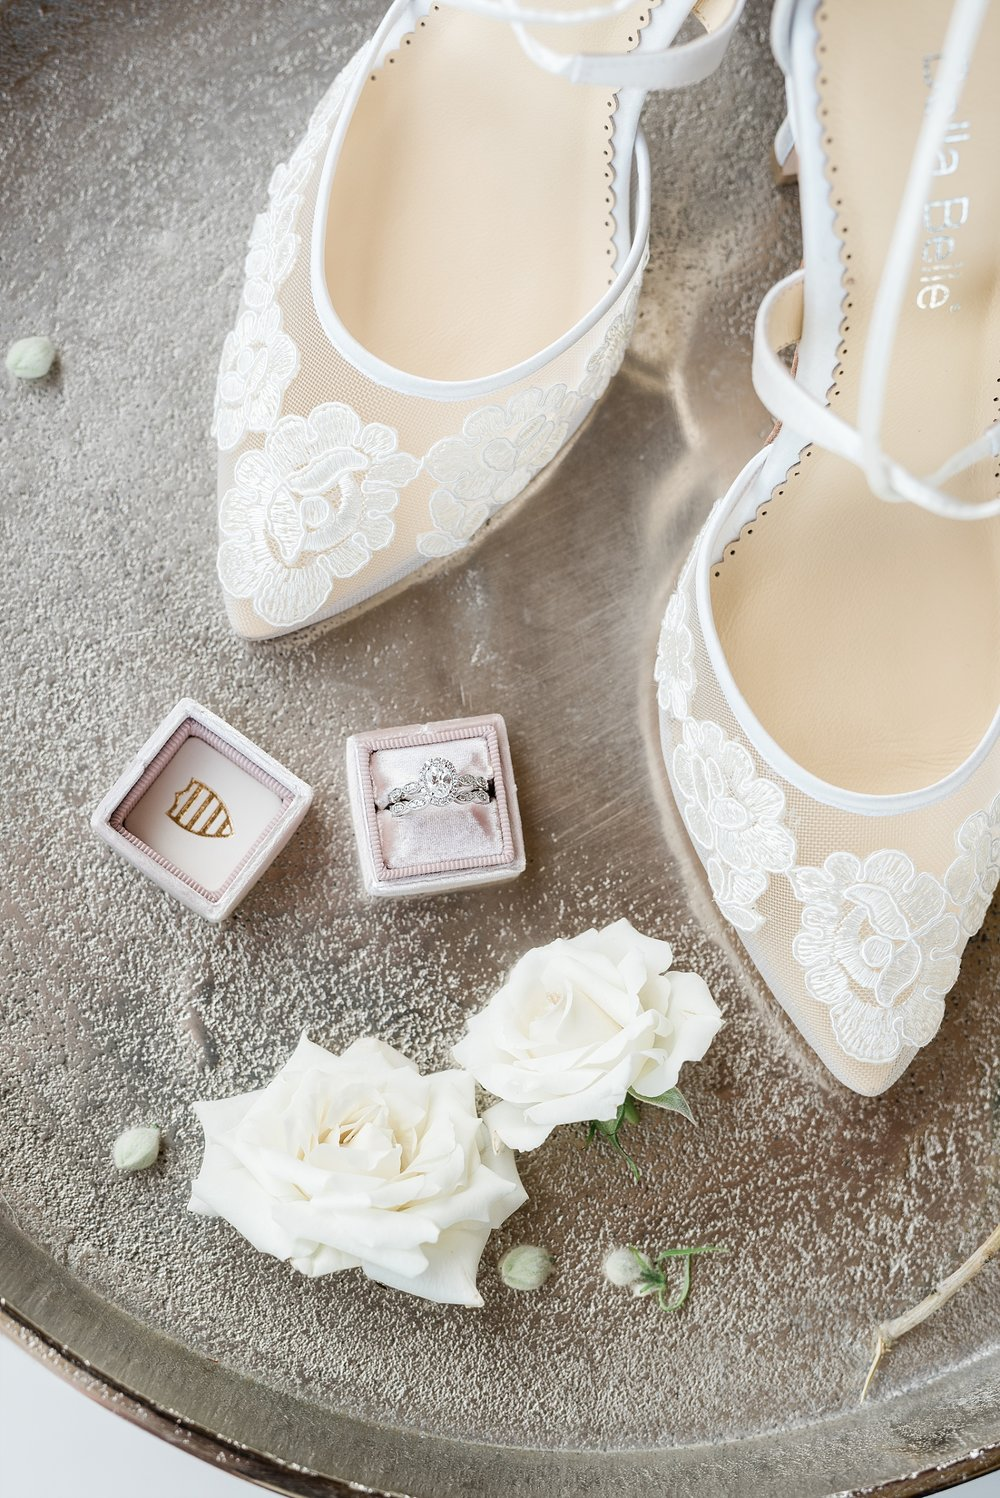 Textural Organic Wedding in All White Venue by Kelsi Kliethermes Wedding Photographer - Missouri, Midwest, and Destinations_0020.jpg